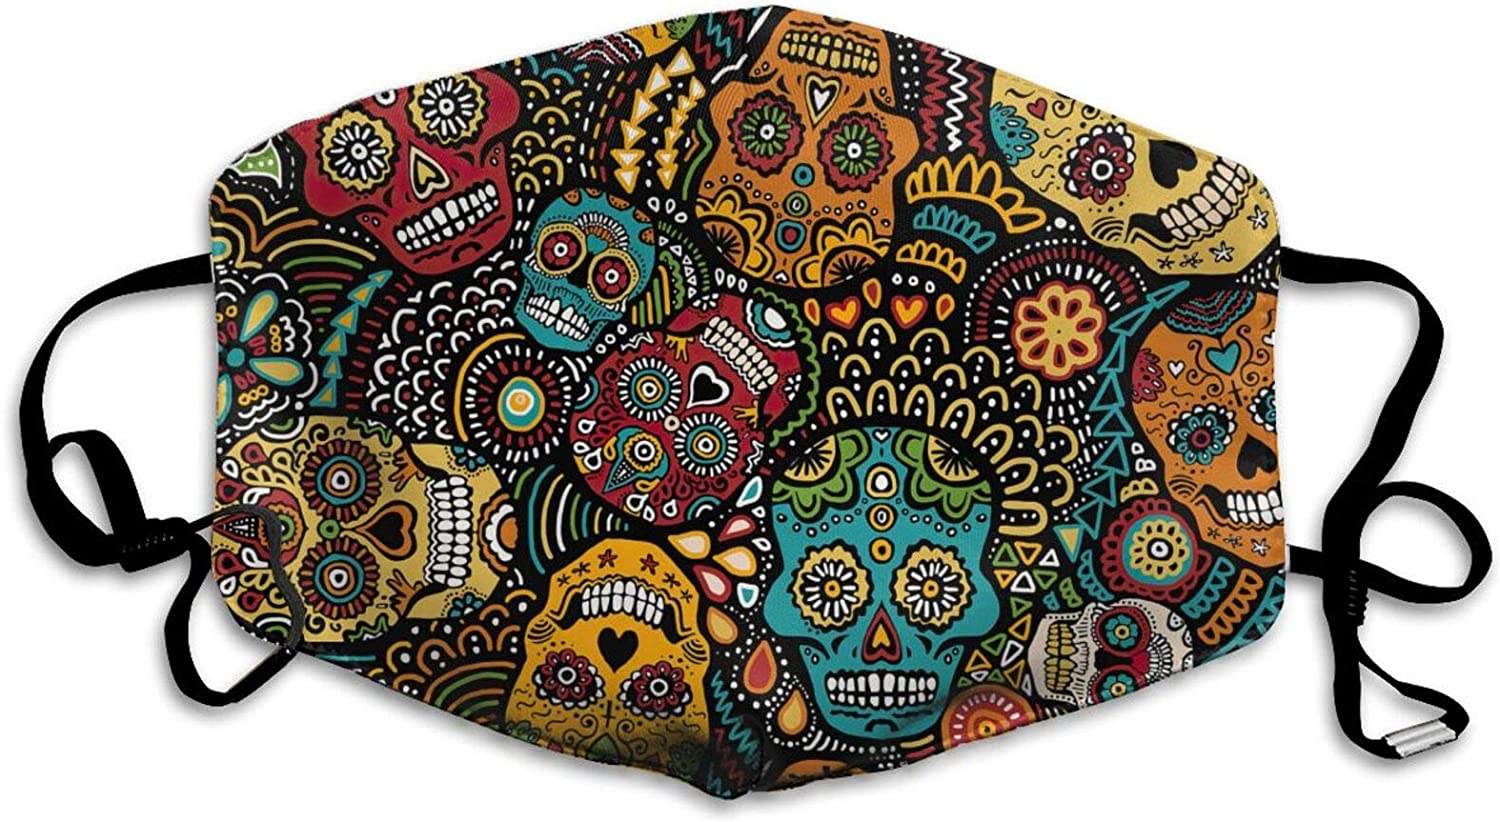 SUGAR-SKULL Face C-over Day of the Dead Cloth Face Madk decor Washable & Reusable Scary Scarf for Adults Kids Christmas Decorations